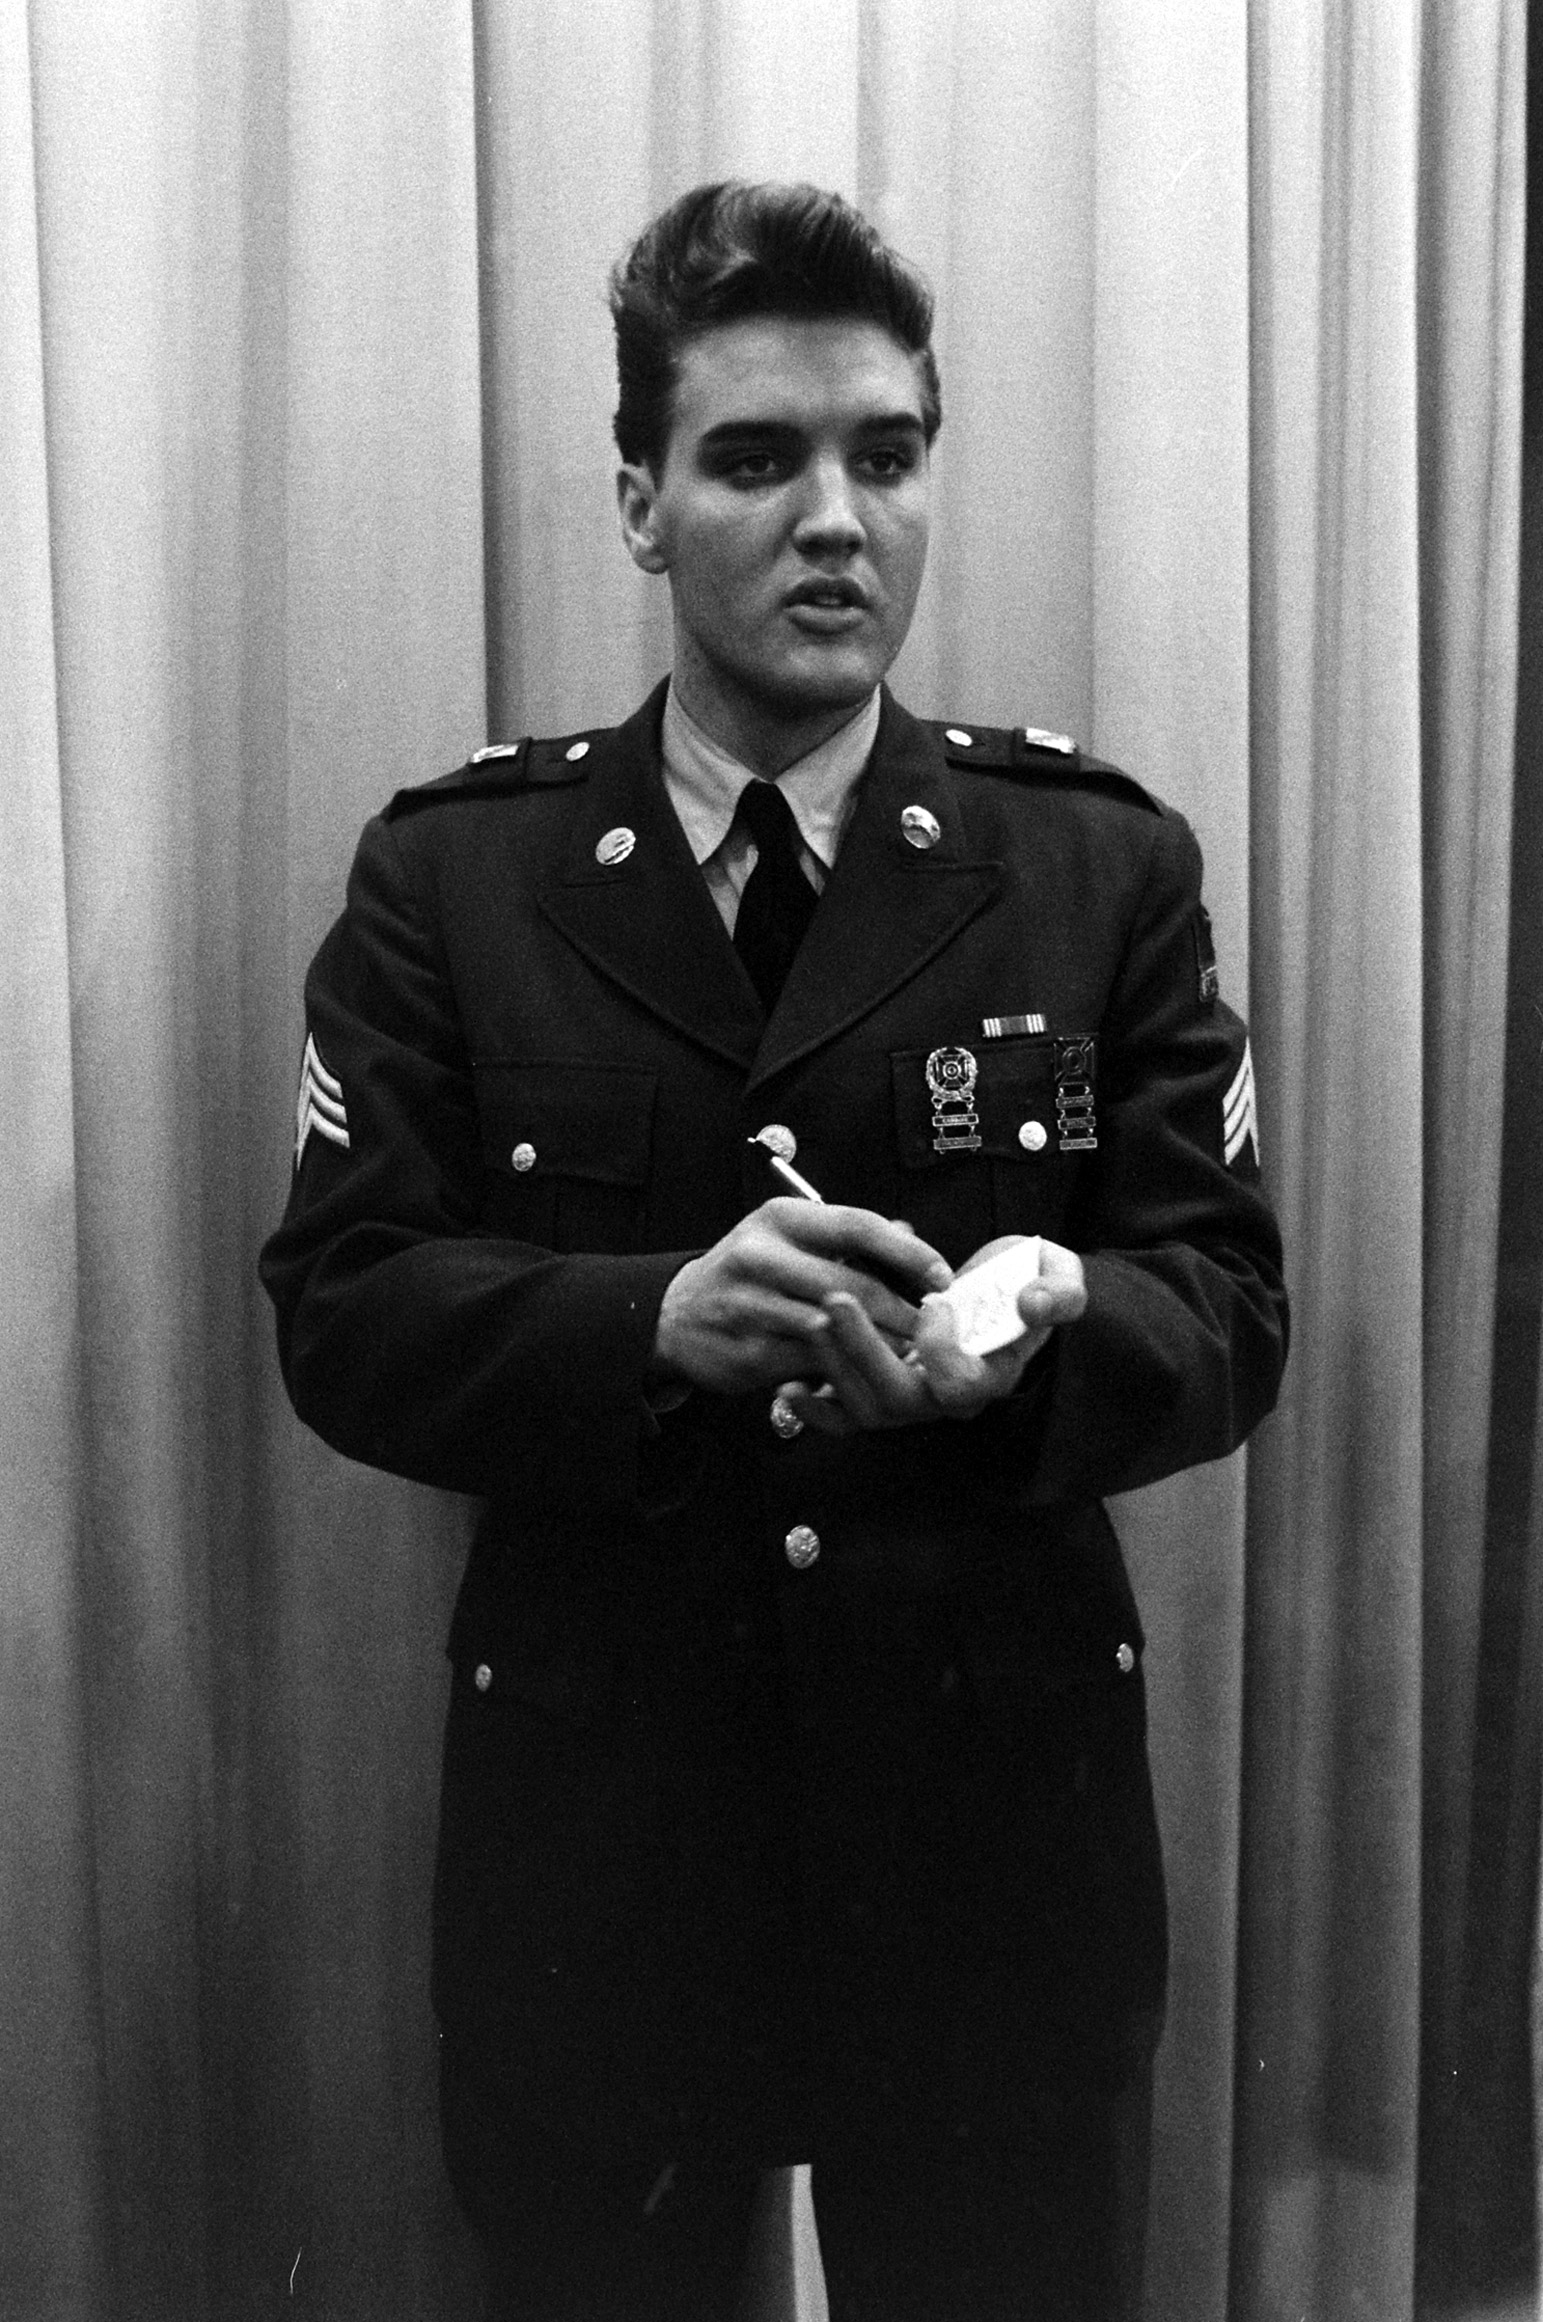 Dress up as Elvis Presley in his pre-jumpsuit days, pictured here at Fort Dix, New Jersey, shortly before his discharge from the U.S. Army in 1960.